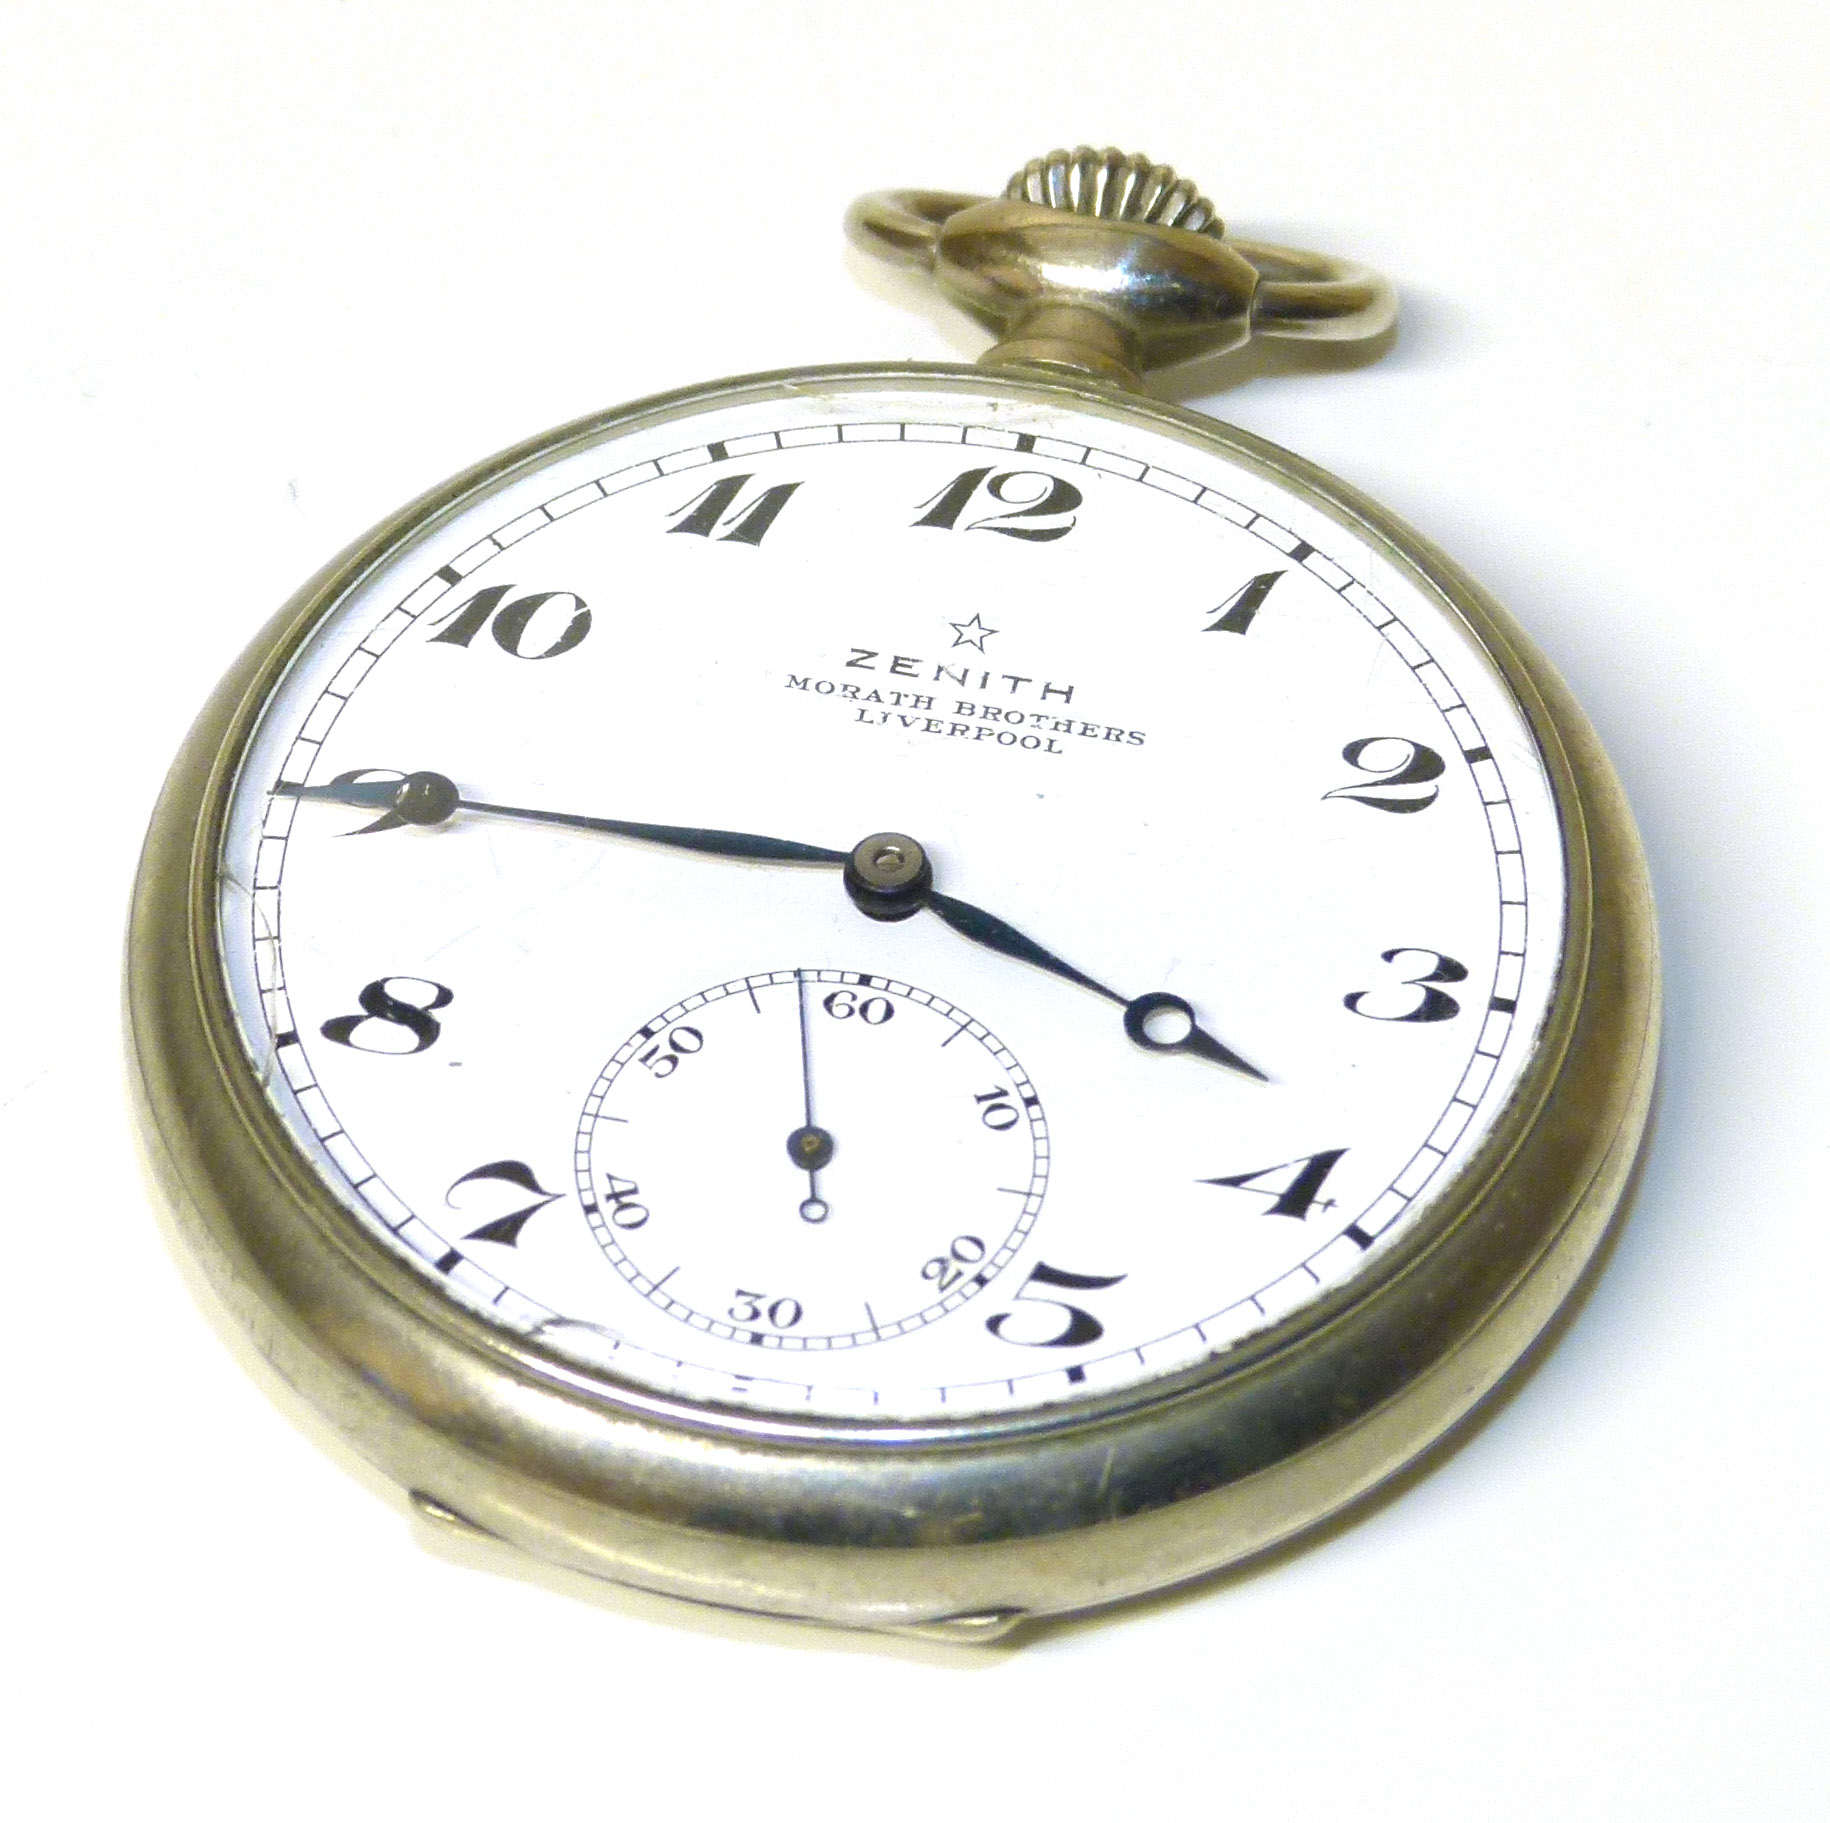 Lot 274 - A Zenith open face pocket watch, the circular signed dial with Arabic hour markers, outer minutes